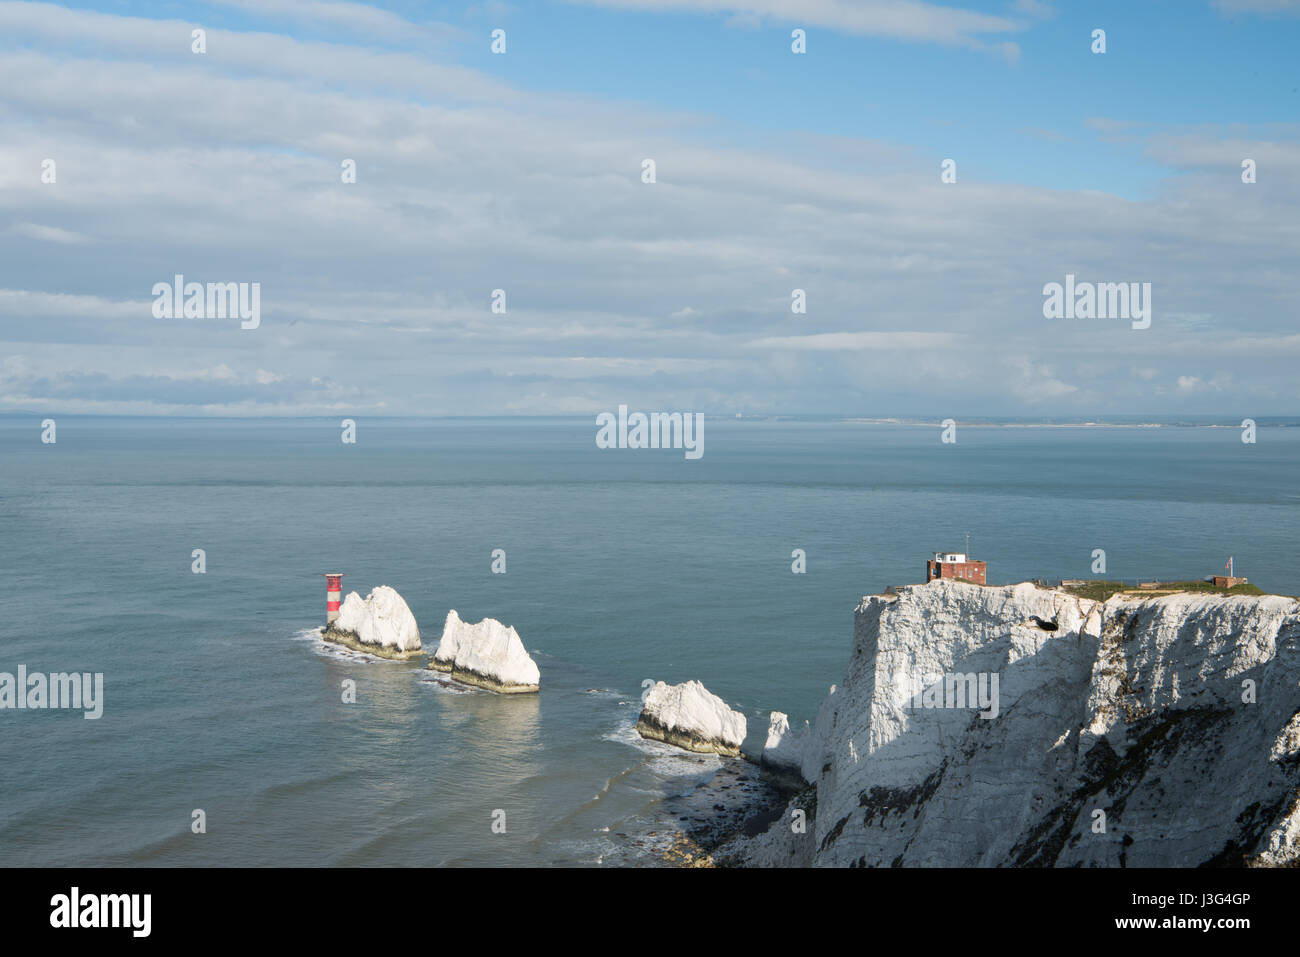 The Needles Lighthouse and Rocks, Isle of Wight. - Stock Image